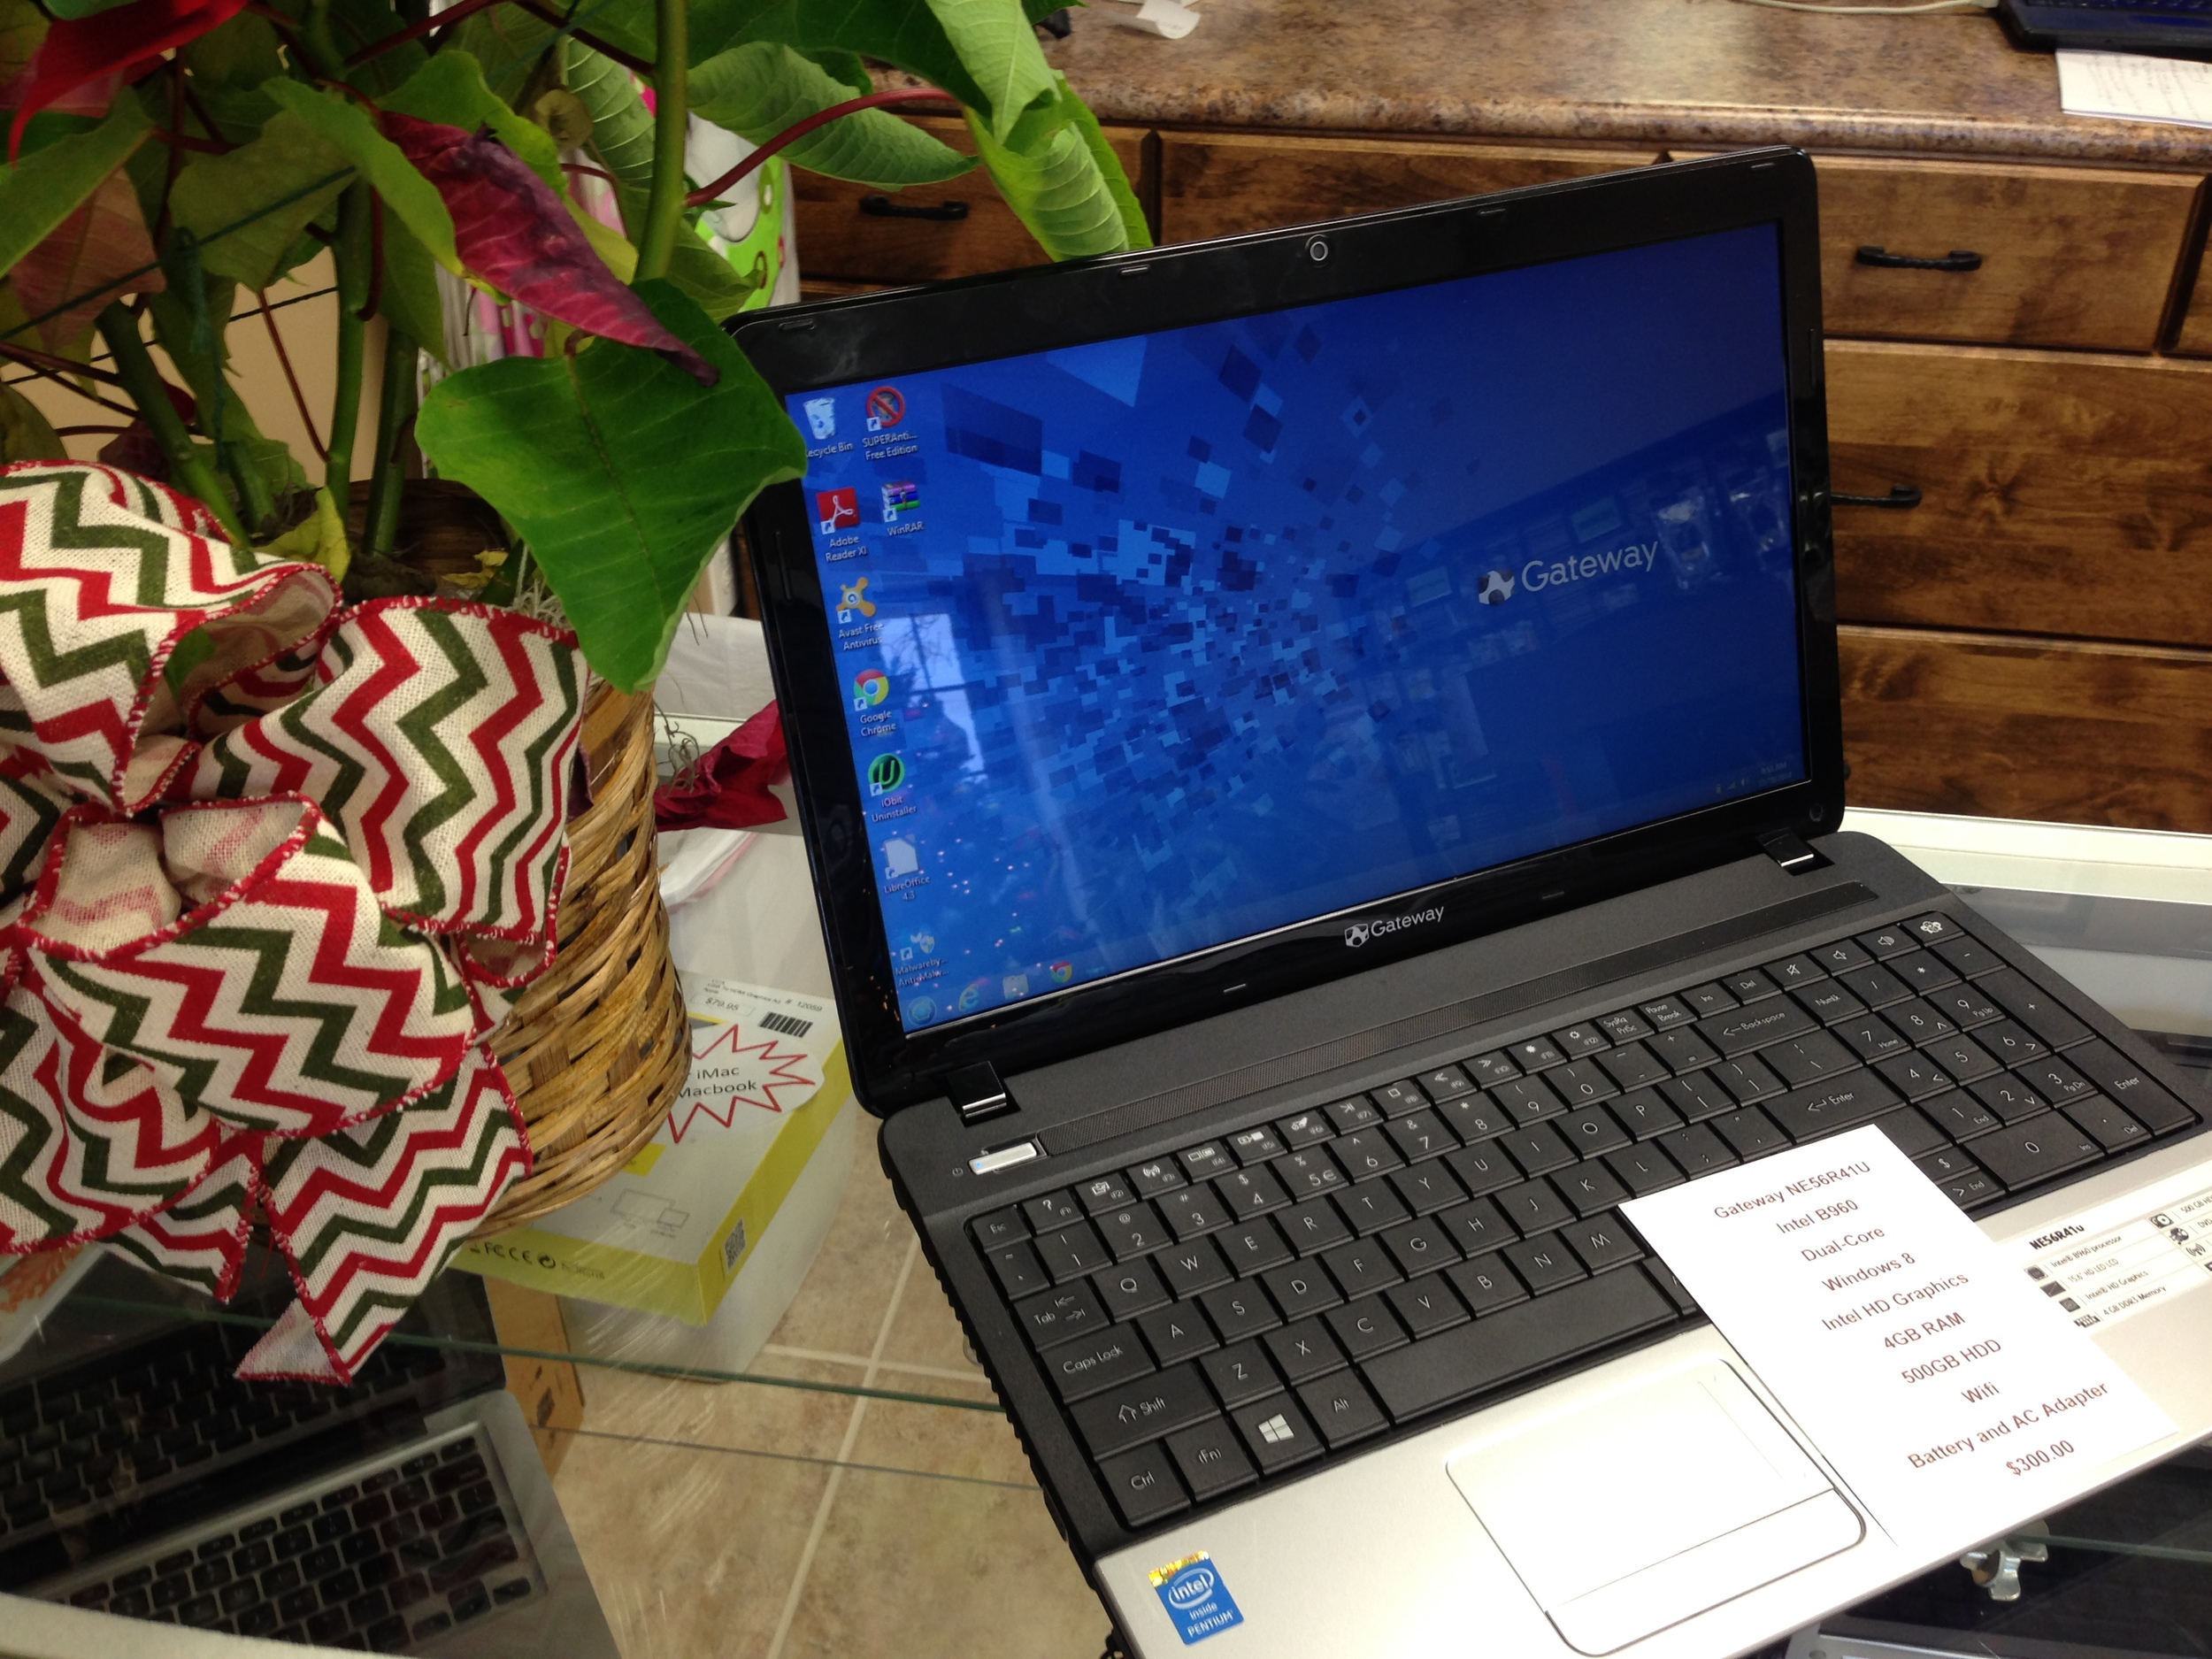 Gateway with Windows 8, 4GB RAM, 500GB Hard Drive, Battery & AC Adapter ...ONLY $300.00!